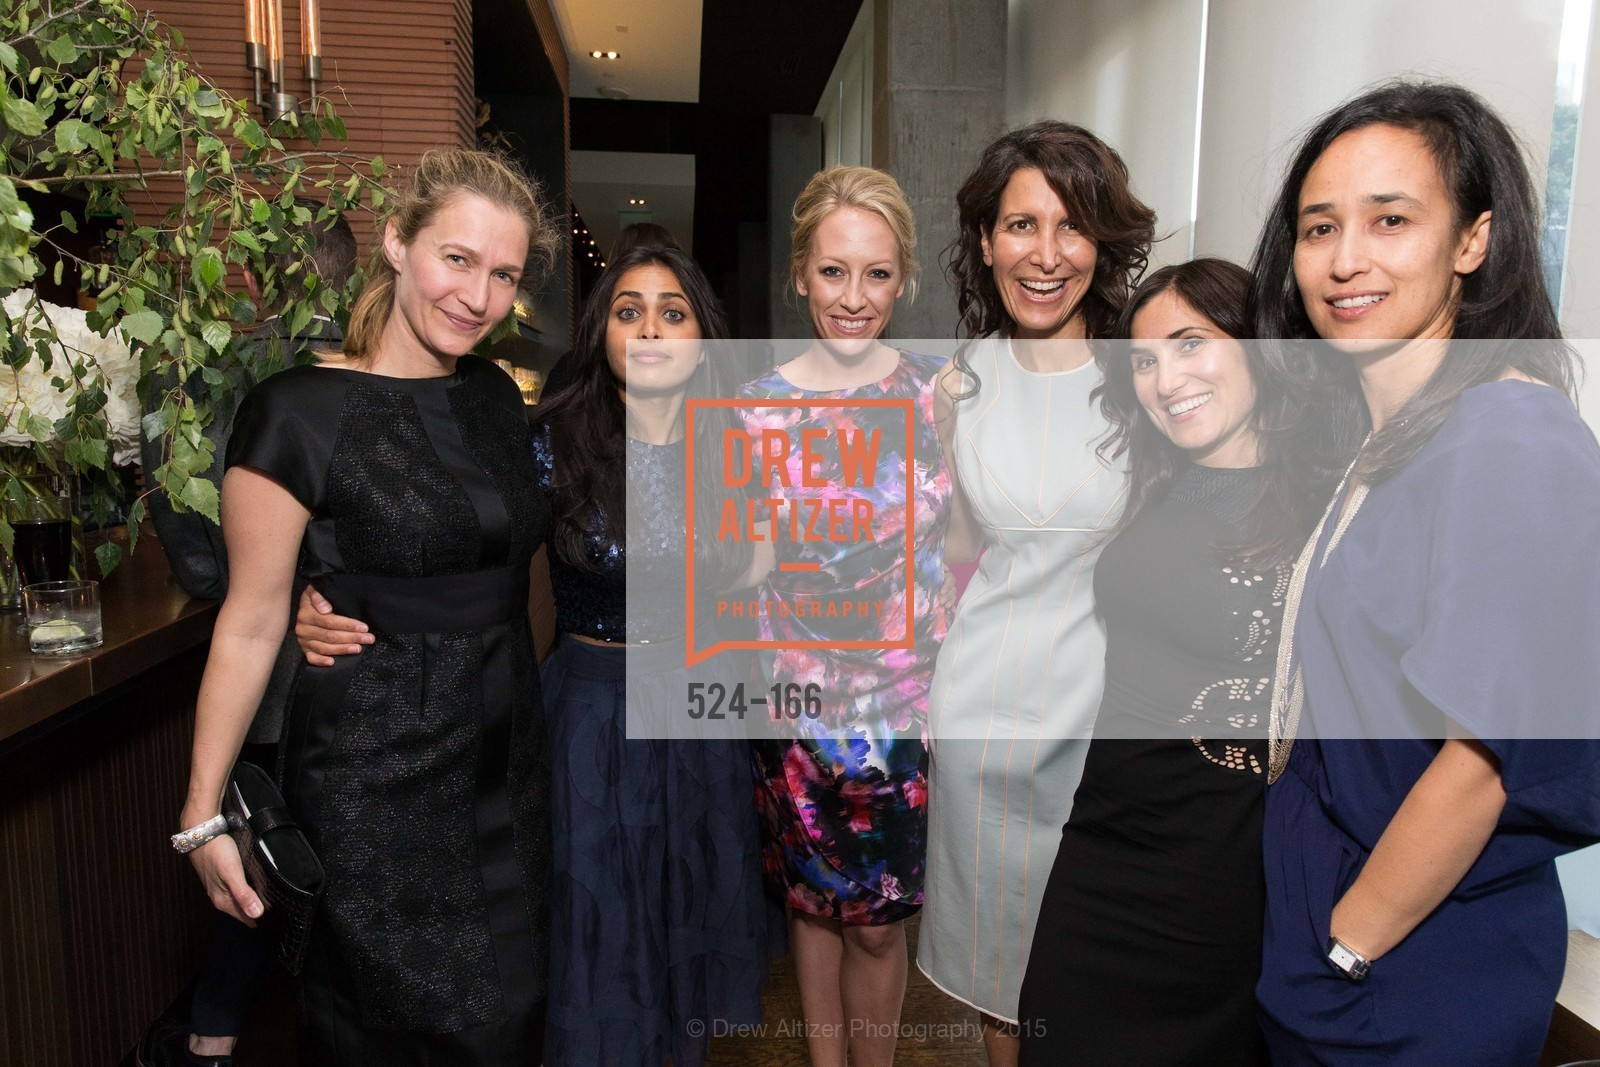 Nina Stanford, Ruzwana Bashir, Julia Hartz, Tina Sharkey, Zem Joaquin, Mariam Naficy, Elle Women in Tech, Prospect. 300 Spear Street, June 15th, 2015,Drew Altizer, Drew Altizer Photography, full-service agency, private events, San Francisco photographer, photographer california